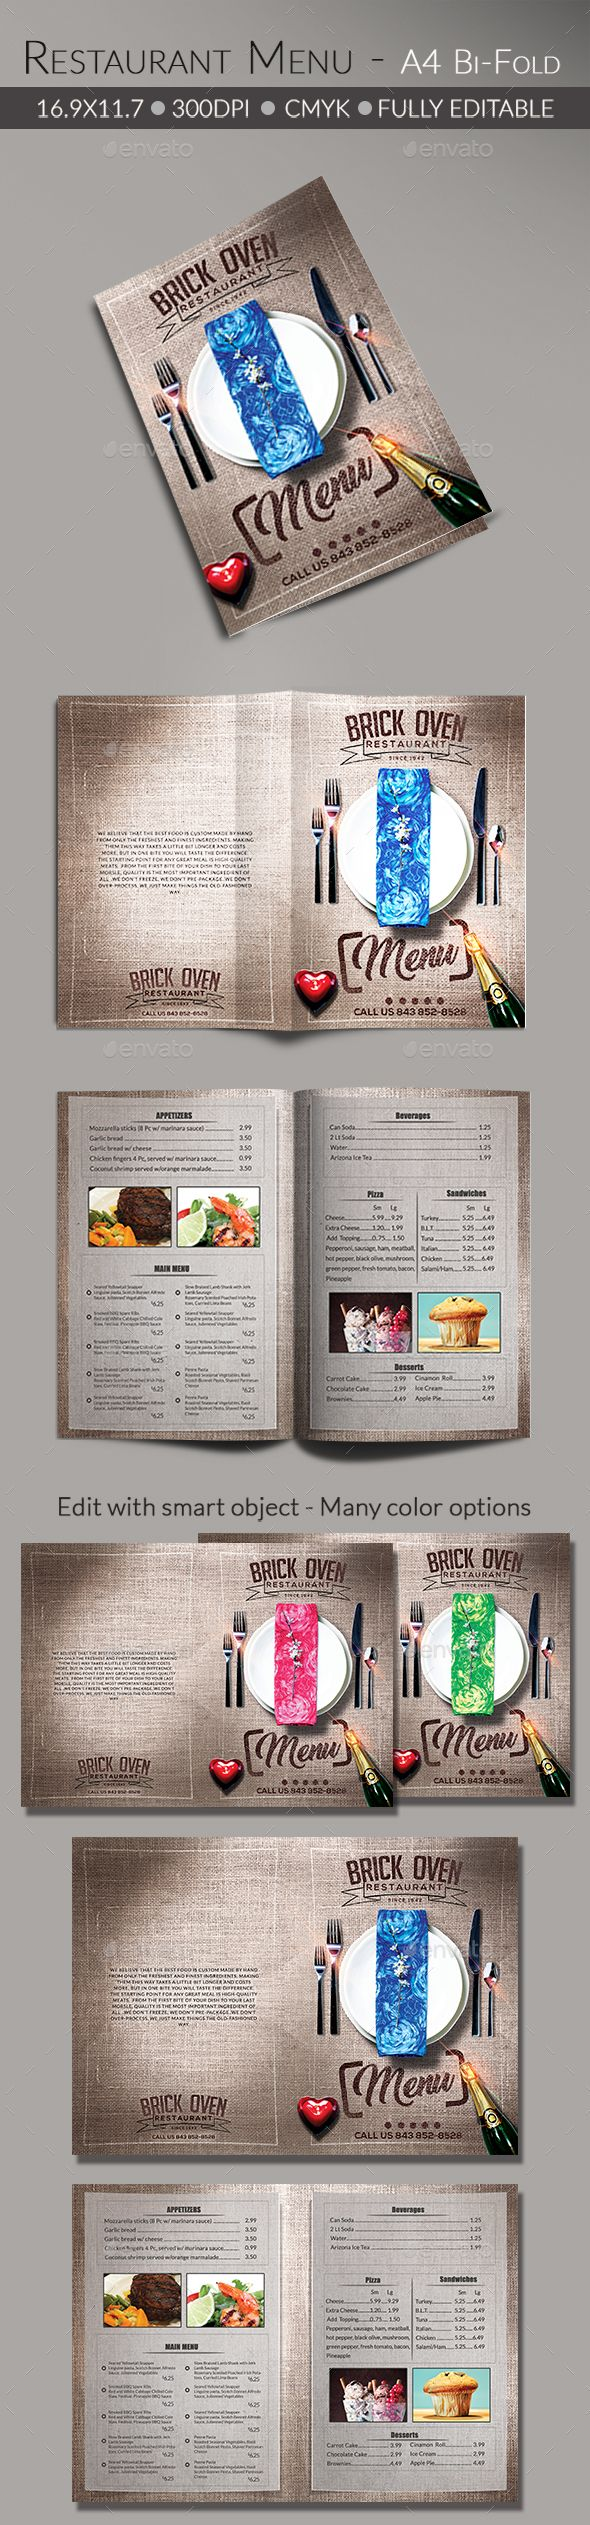 Food/ Restaurant Menu by Arrow3000 File Features: 鈥rint Ready PSD 鈥?6.9鈥漻11.7鈥?20inch   Bleed and Guidelines 鈥?00 dpi / CMYK鈥any color options 鈥asy edit with smart